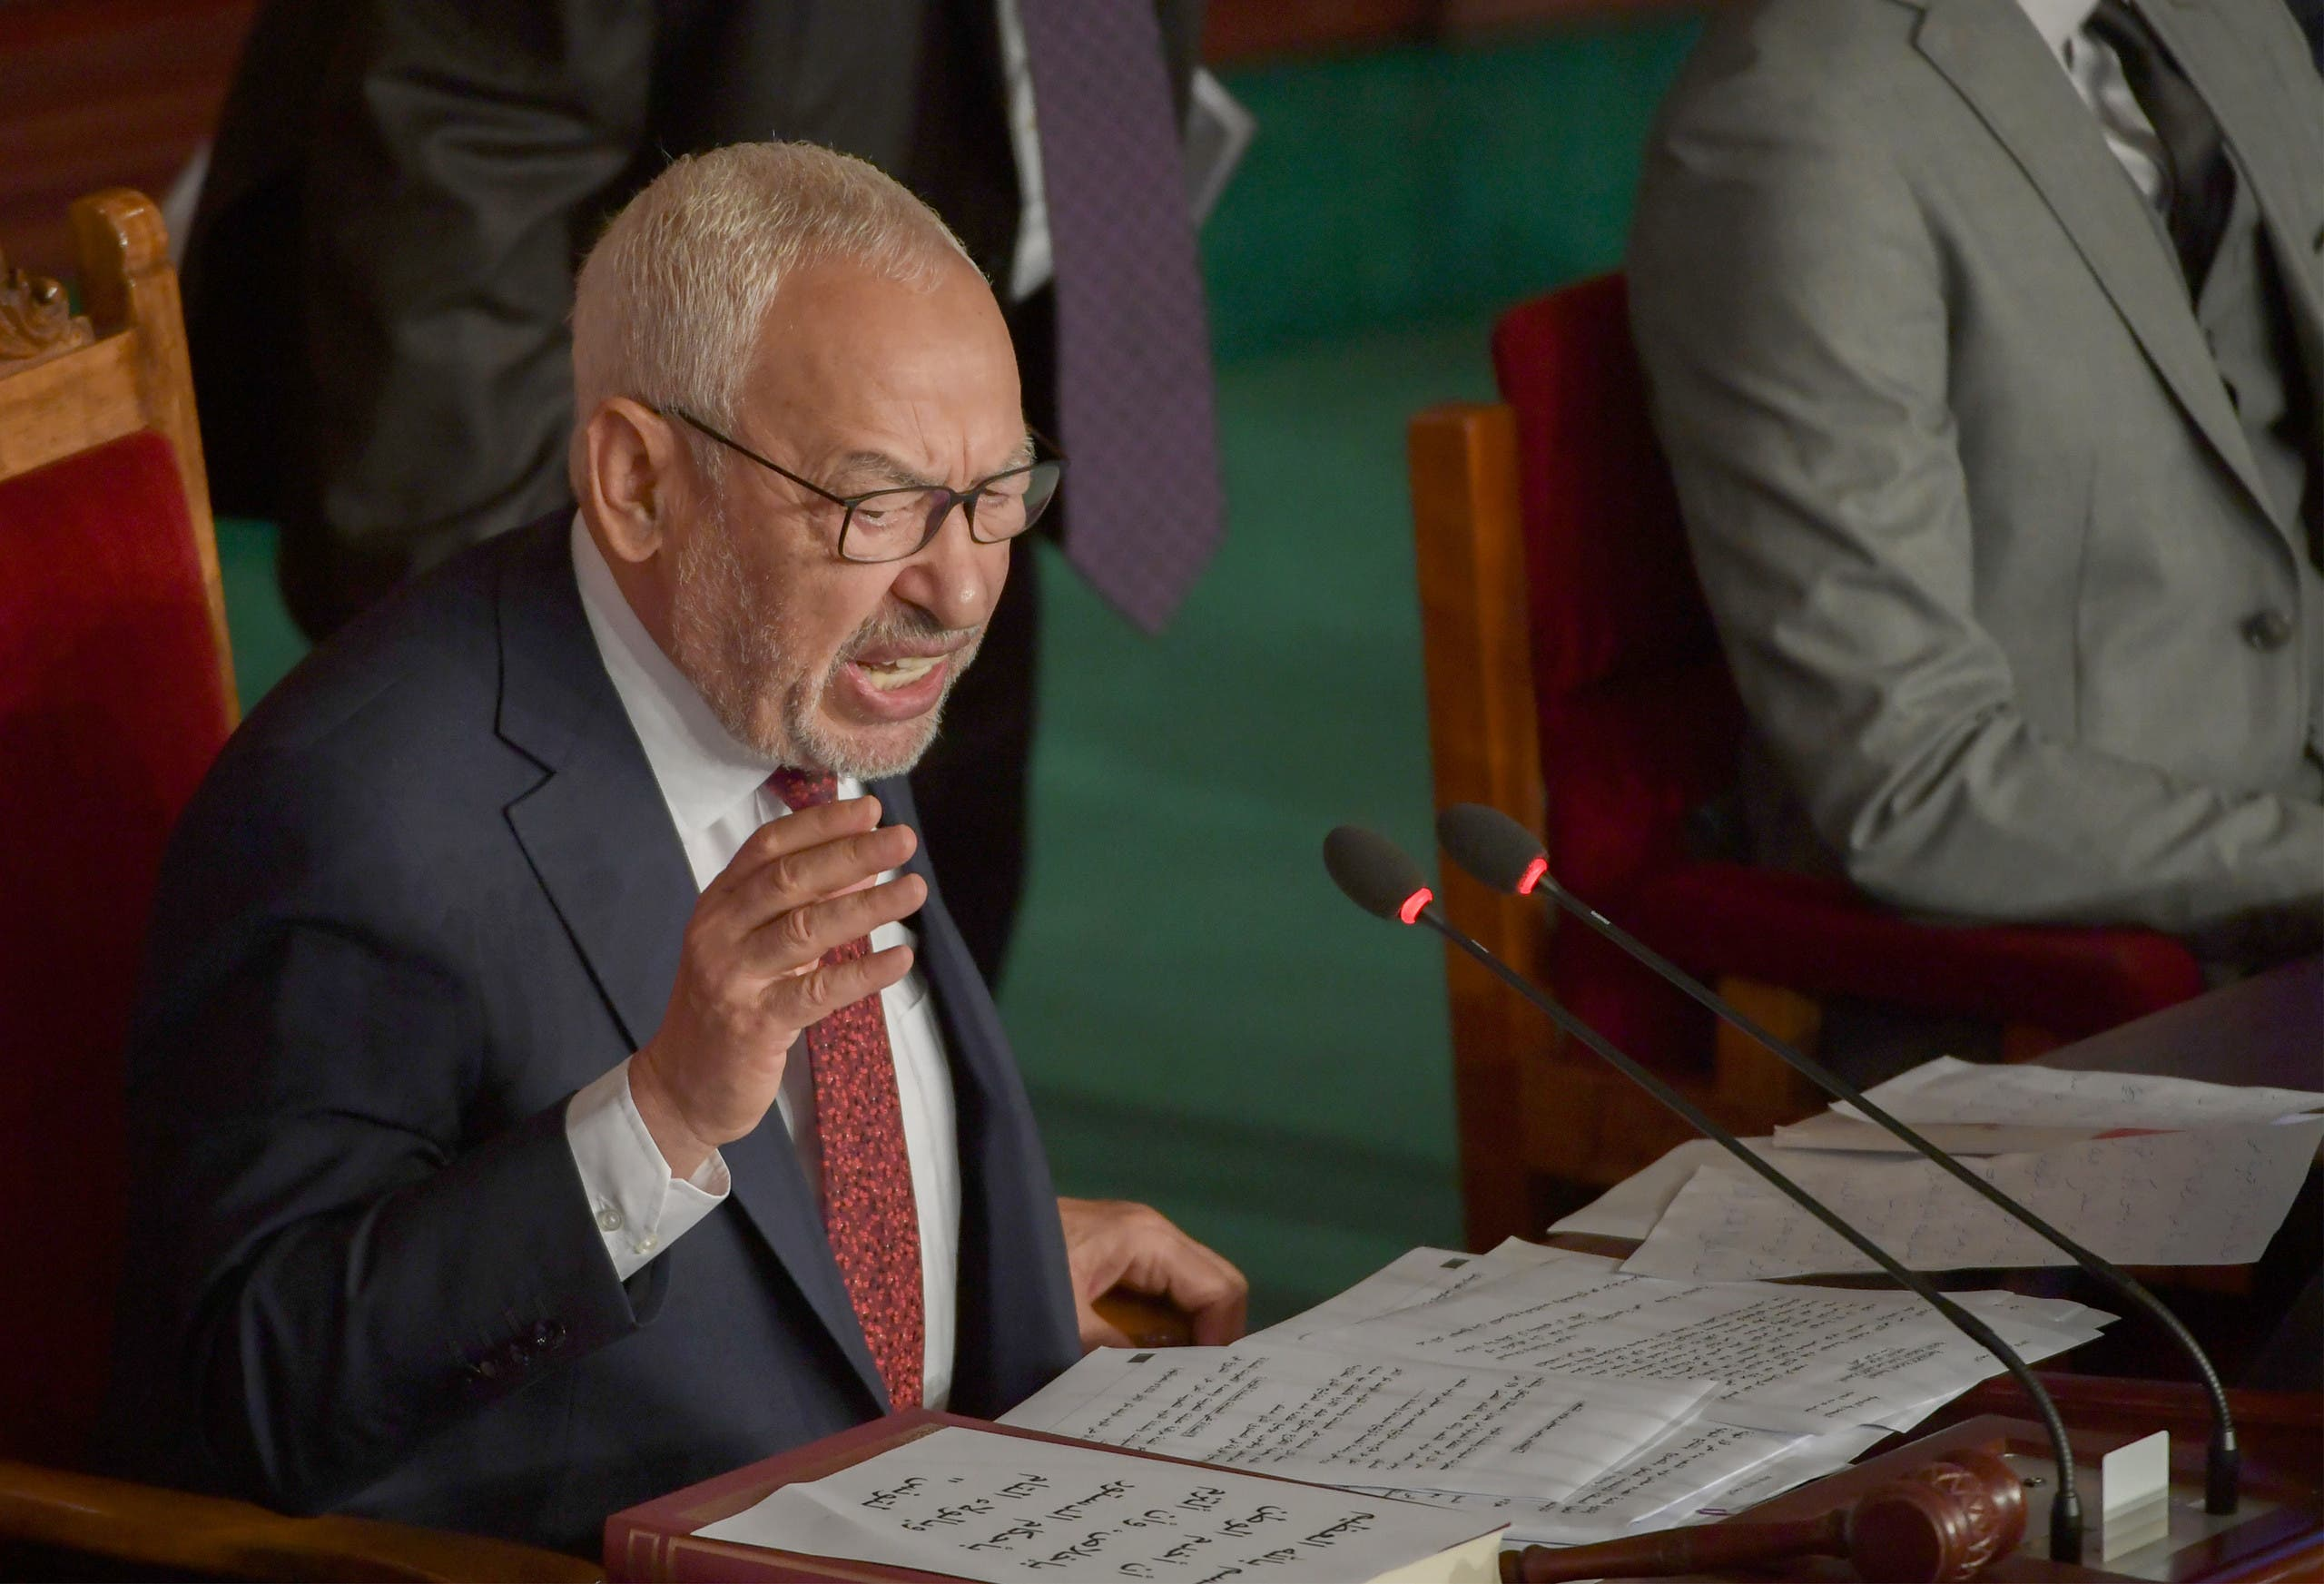 Tunisian Islamist-inspired Ennahdha party leader Rached Ghannouchi chairs the first session of the new parliament following the October elections in the capital Tunis, on November 13, 2019. (File photo)